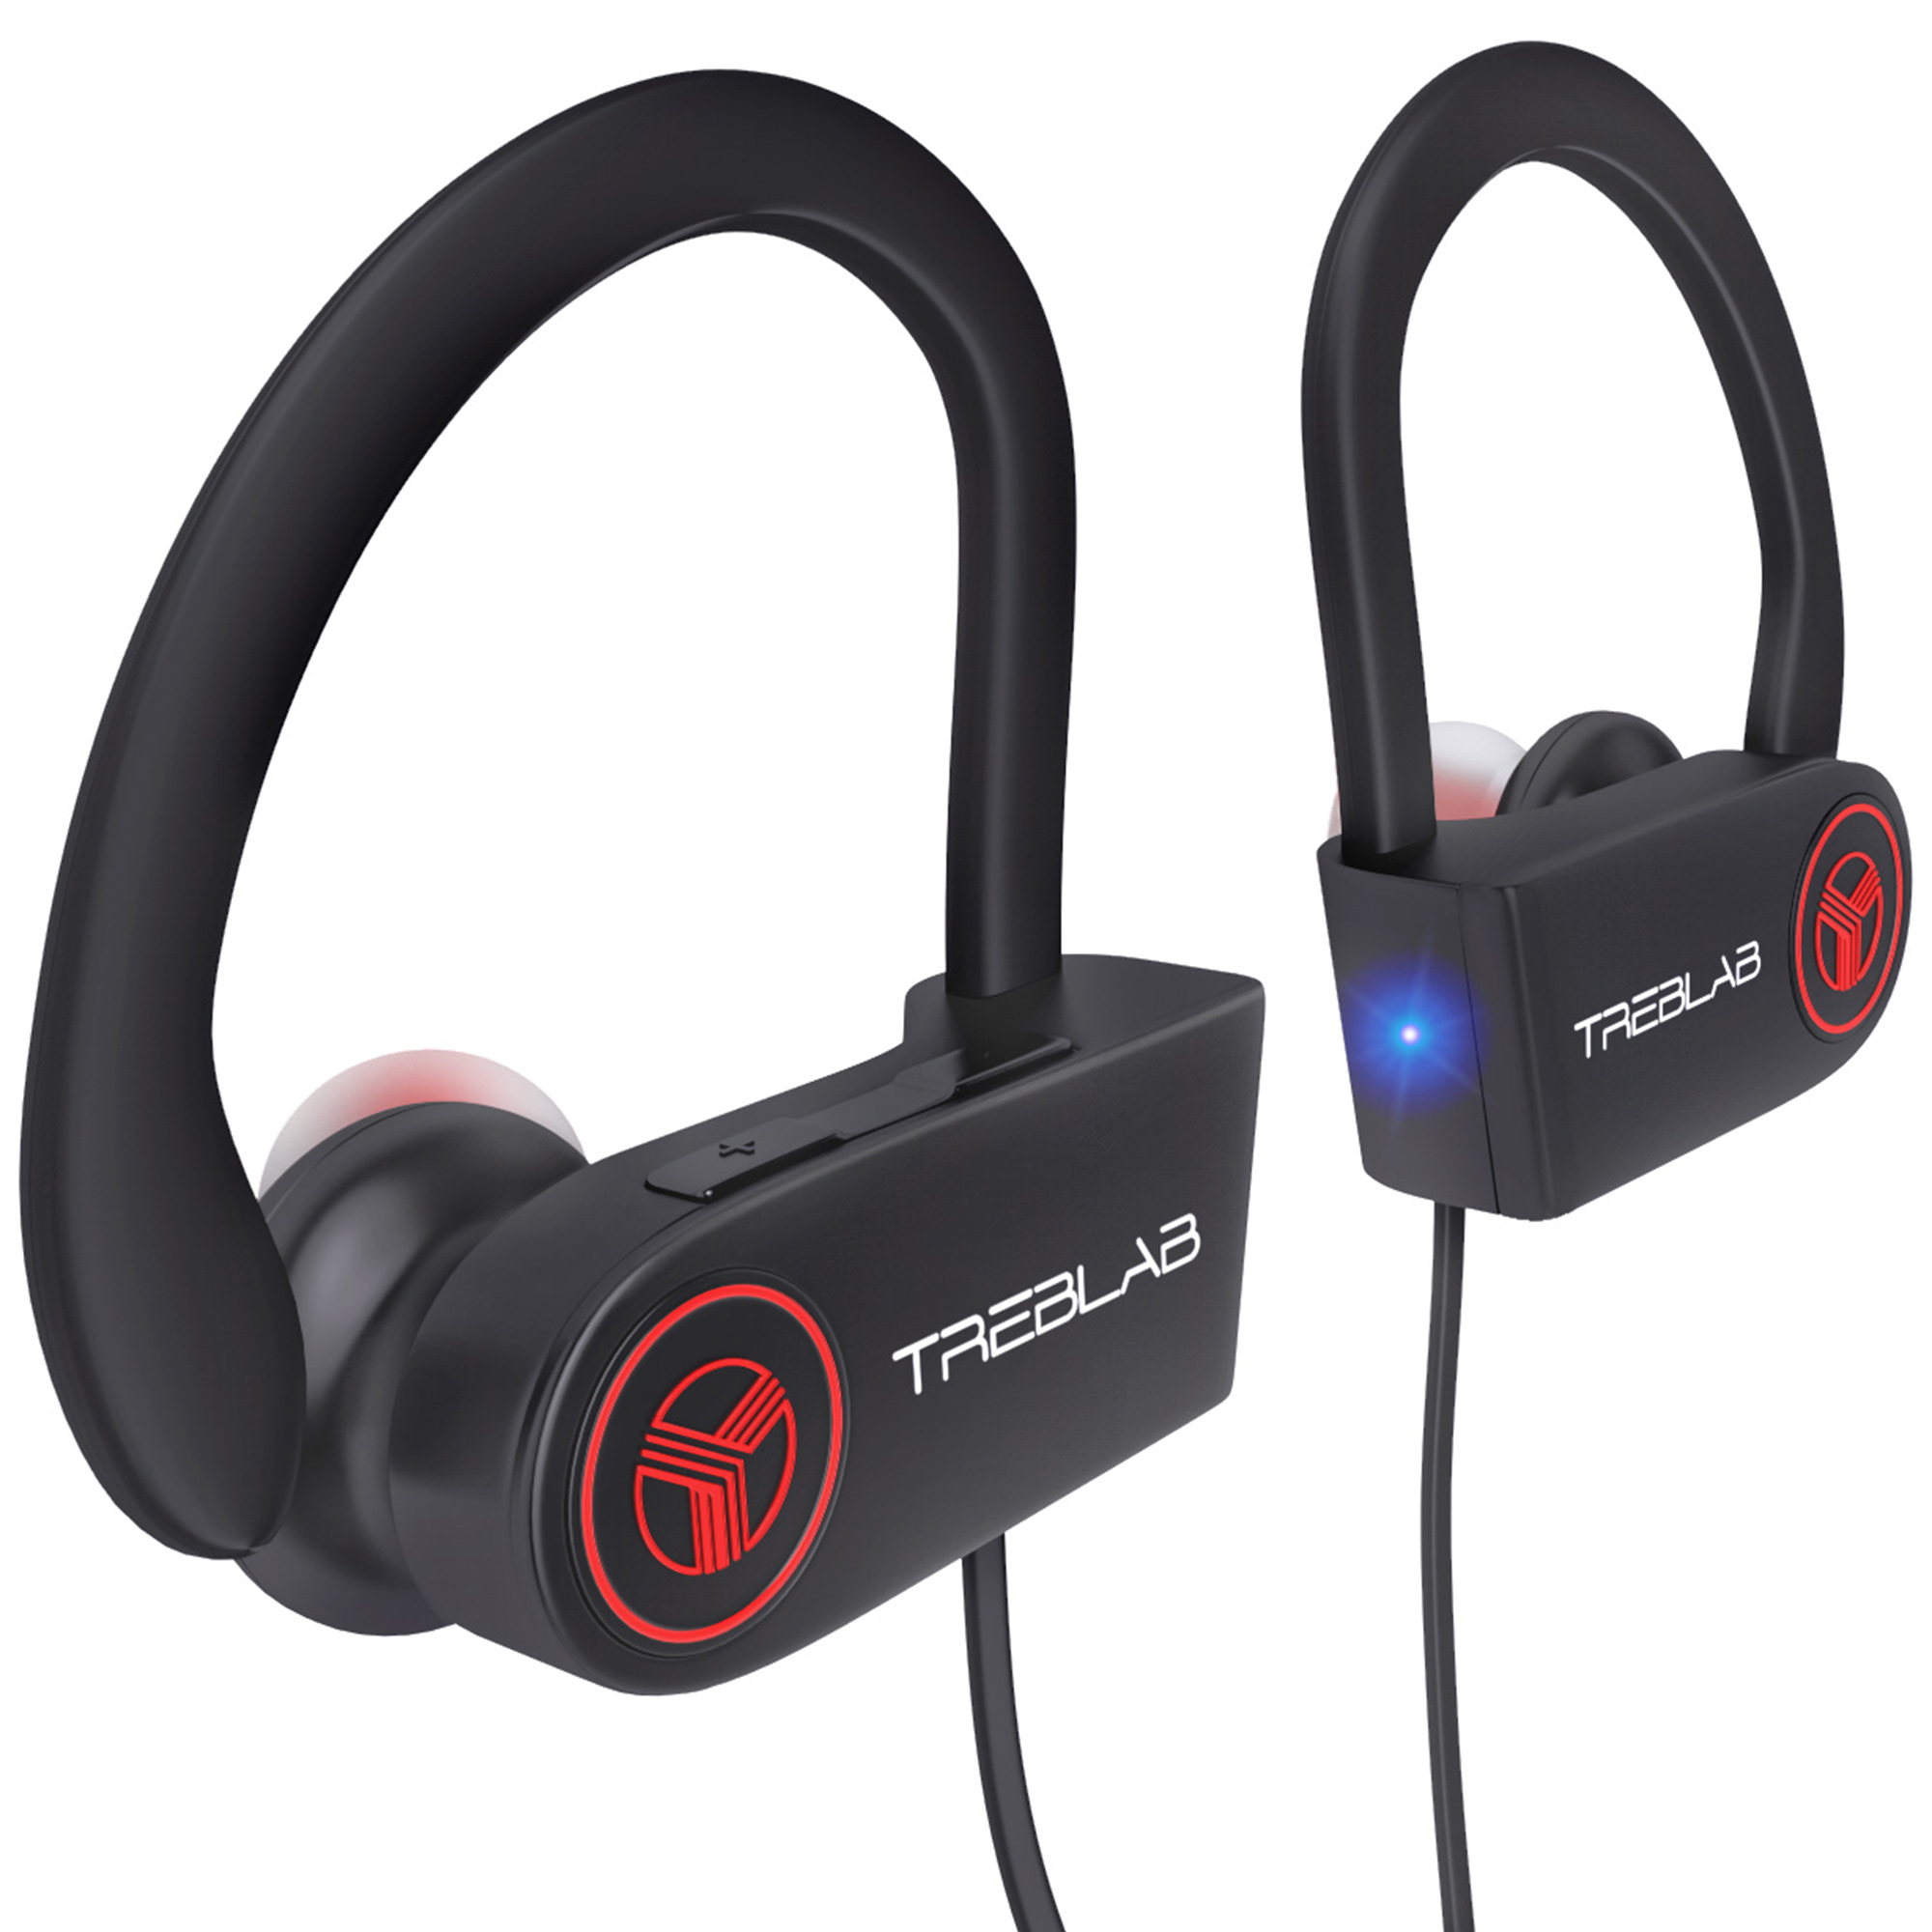 TREBLAB XR100 Bluetooth Sport Headphones, Wireless Earbuds for Running Workout, Noise Cancelling Sweatproof Cordless Headset for Gym Use, Earphones w/Mic, iPhone Android (Black)